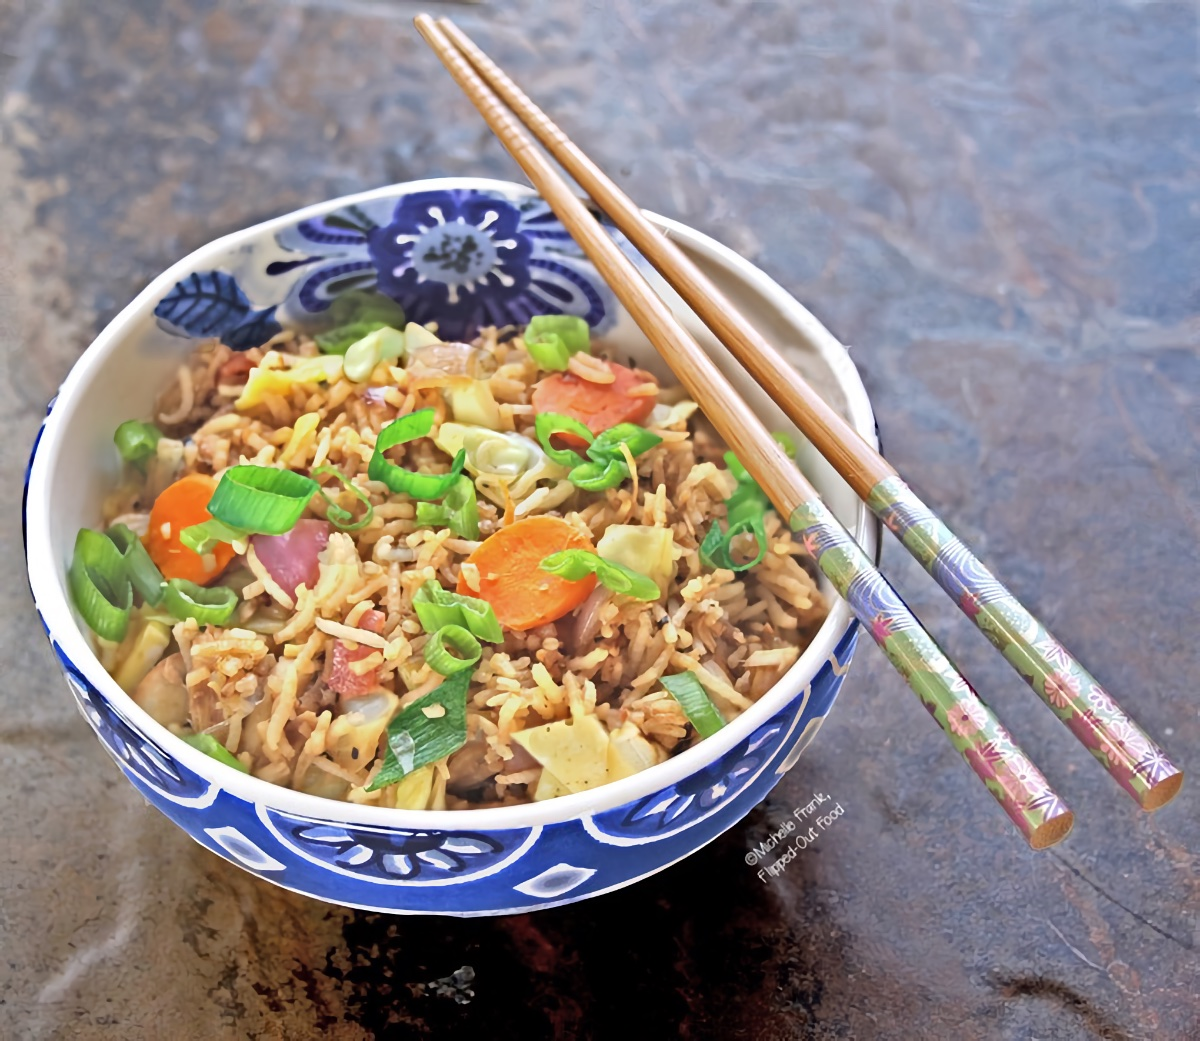 Leftover Vegetable Fried Rice in a blue and white ceramic bowl with a pair of chopsticks laying on top.